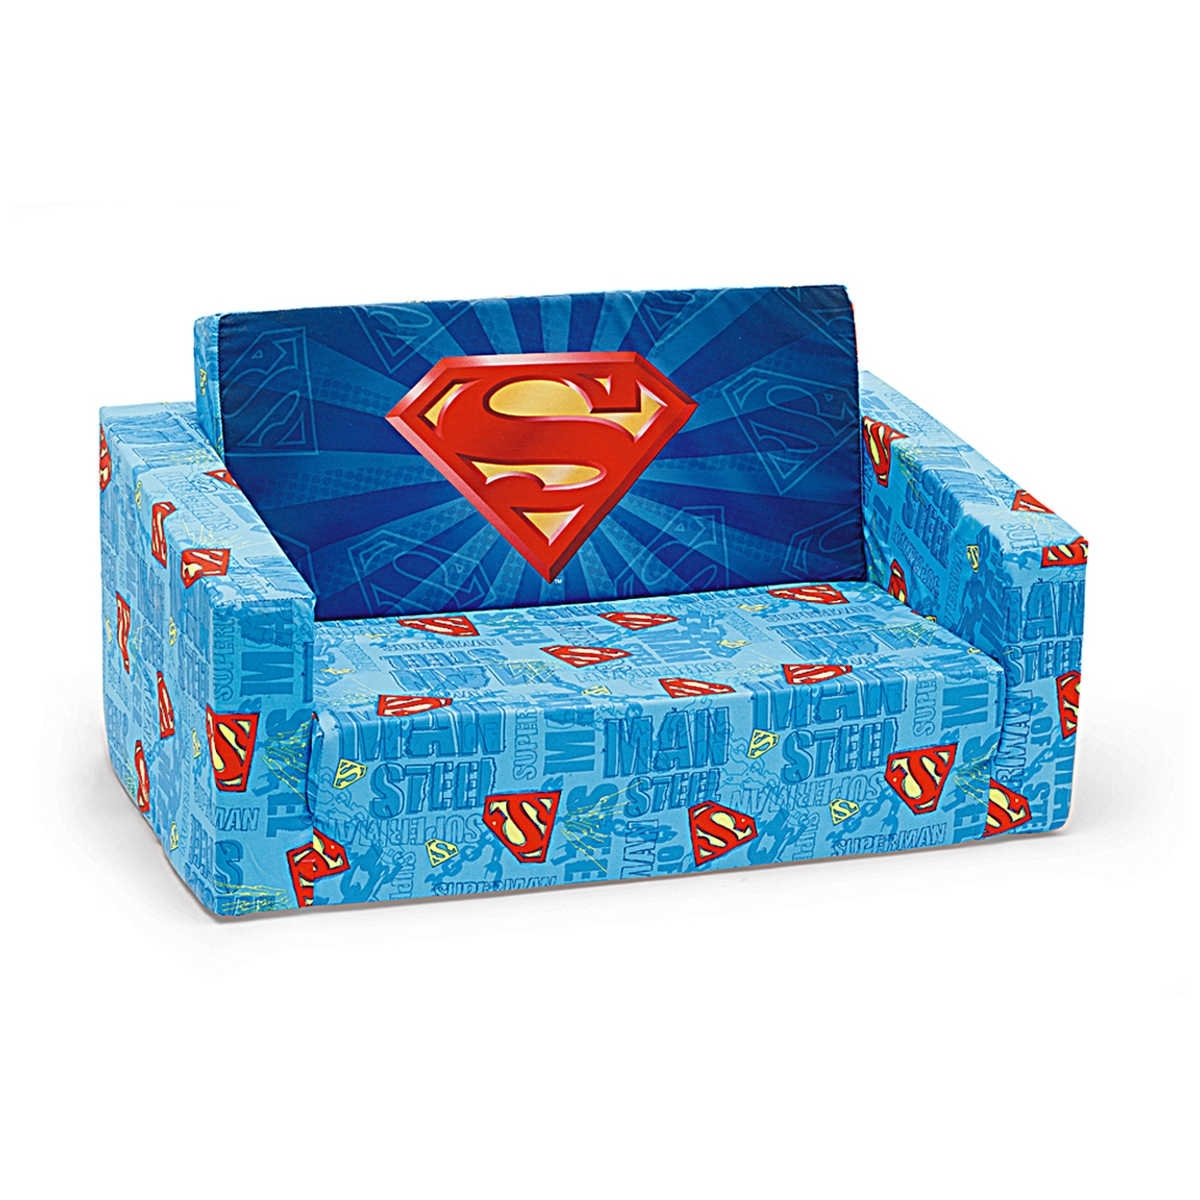 Superman Flip Out Sofa | Functionalities In Flip Out Sofas (View 8 of 10)